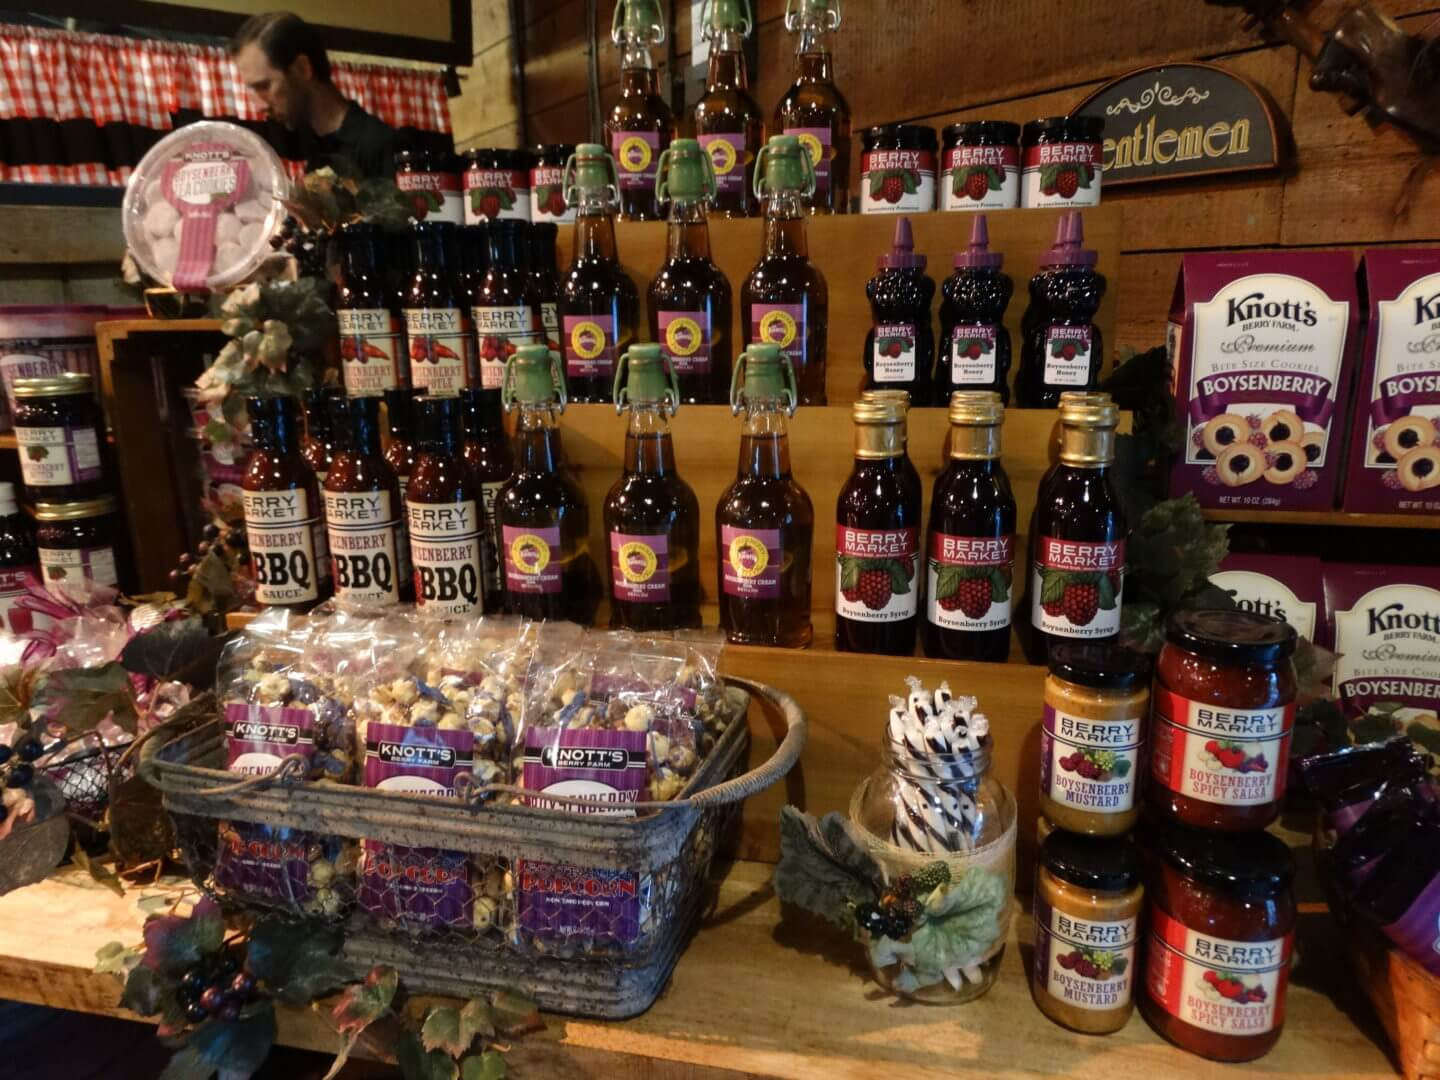 PREVIEW: Get a taste of Boysenberry Festival 2017 at Knott's